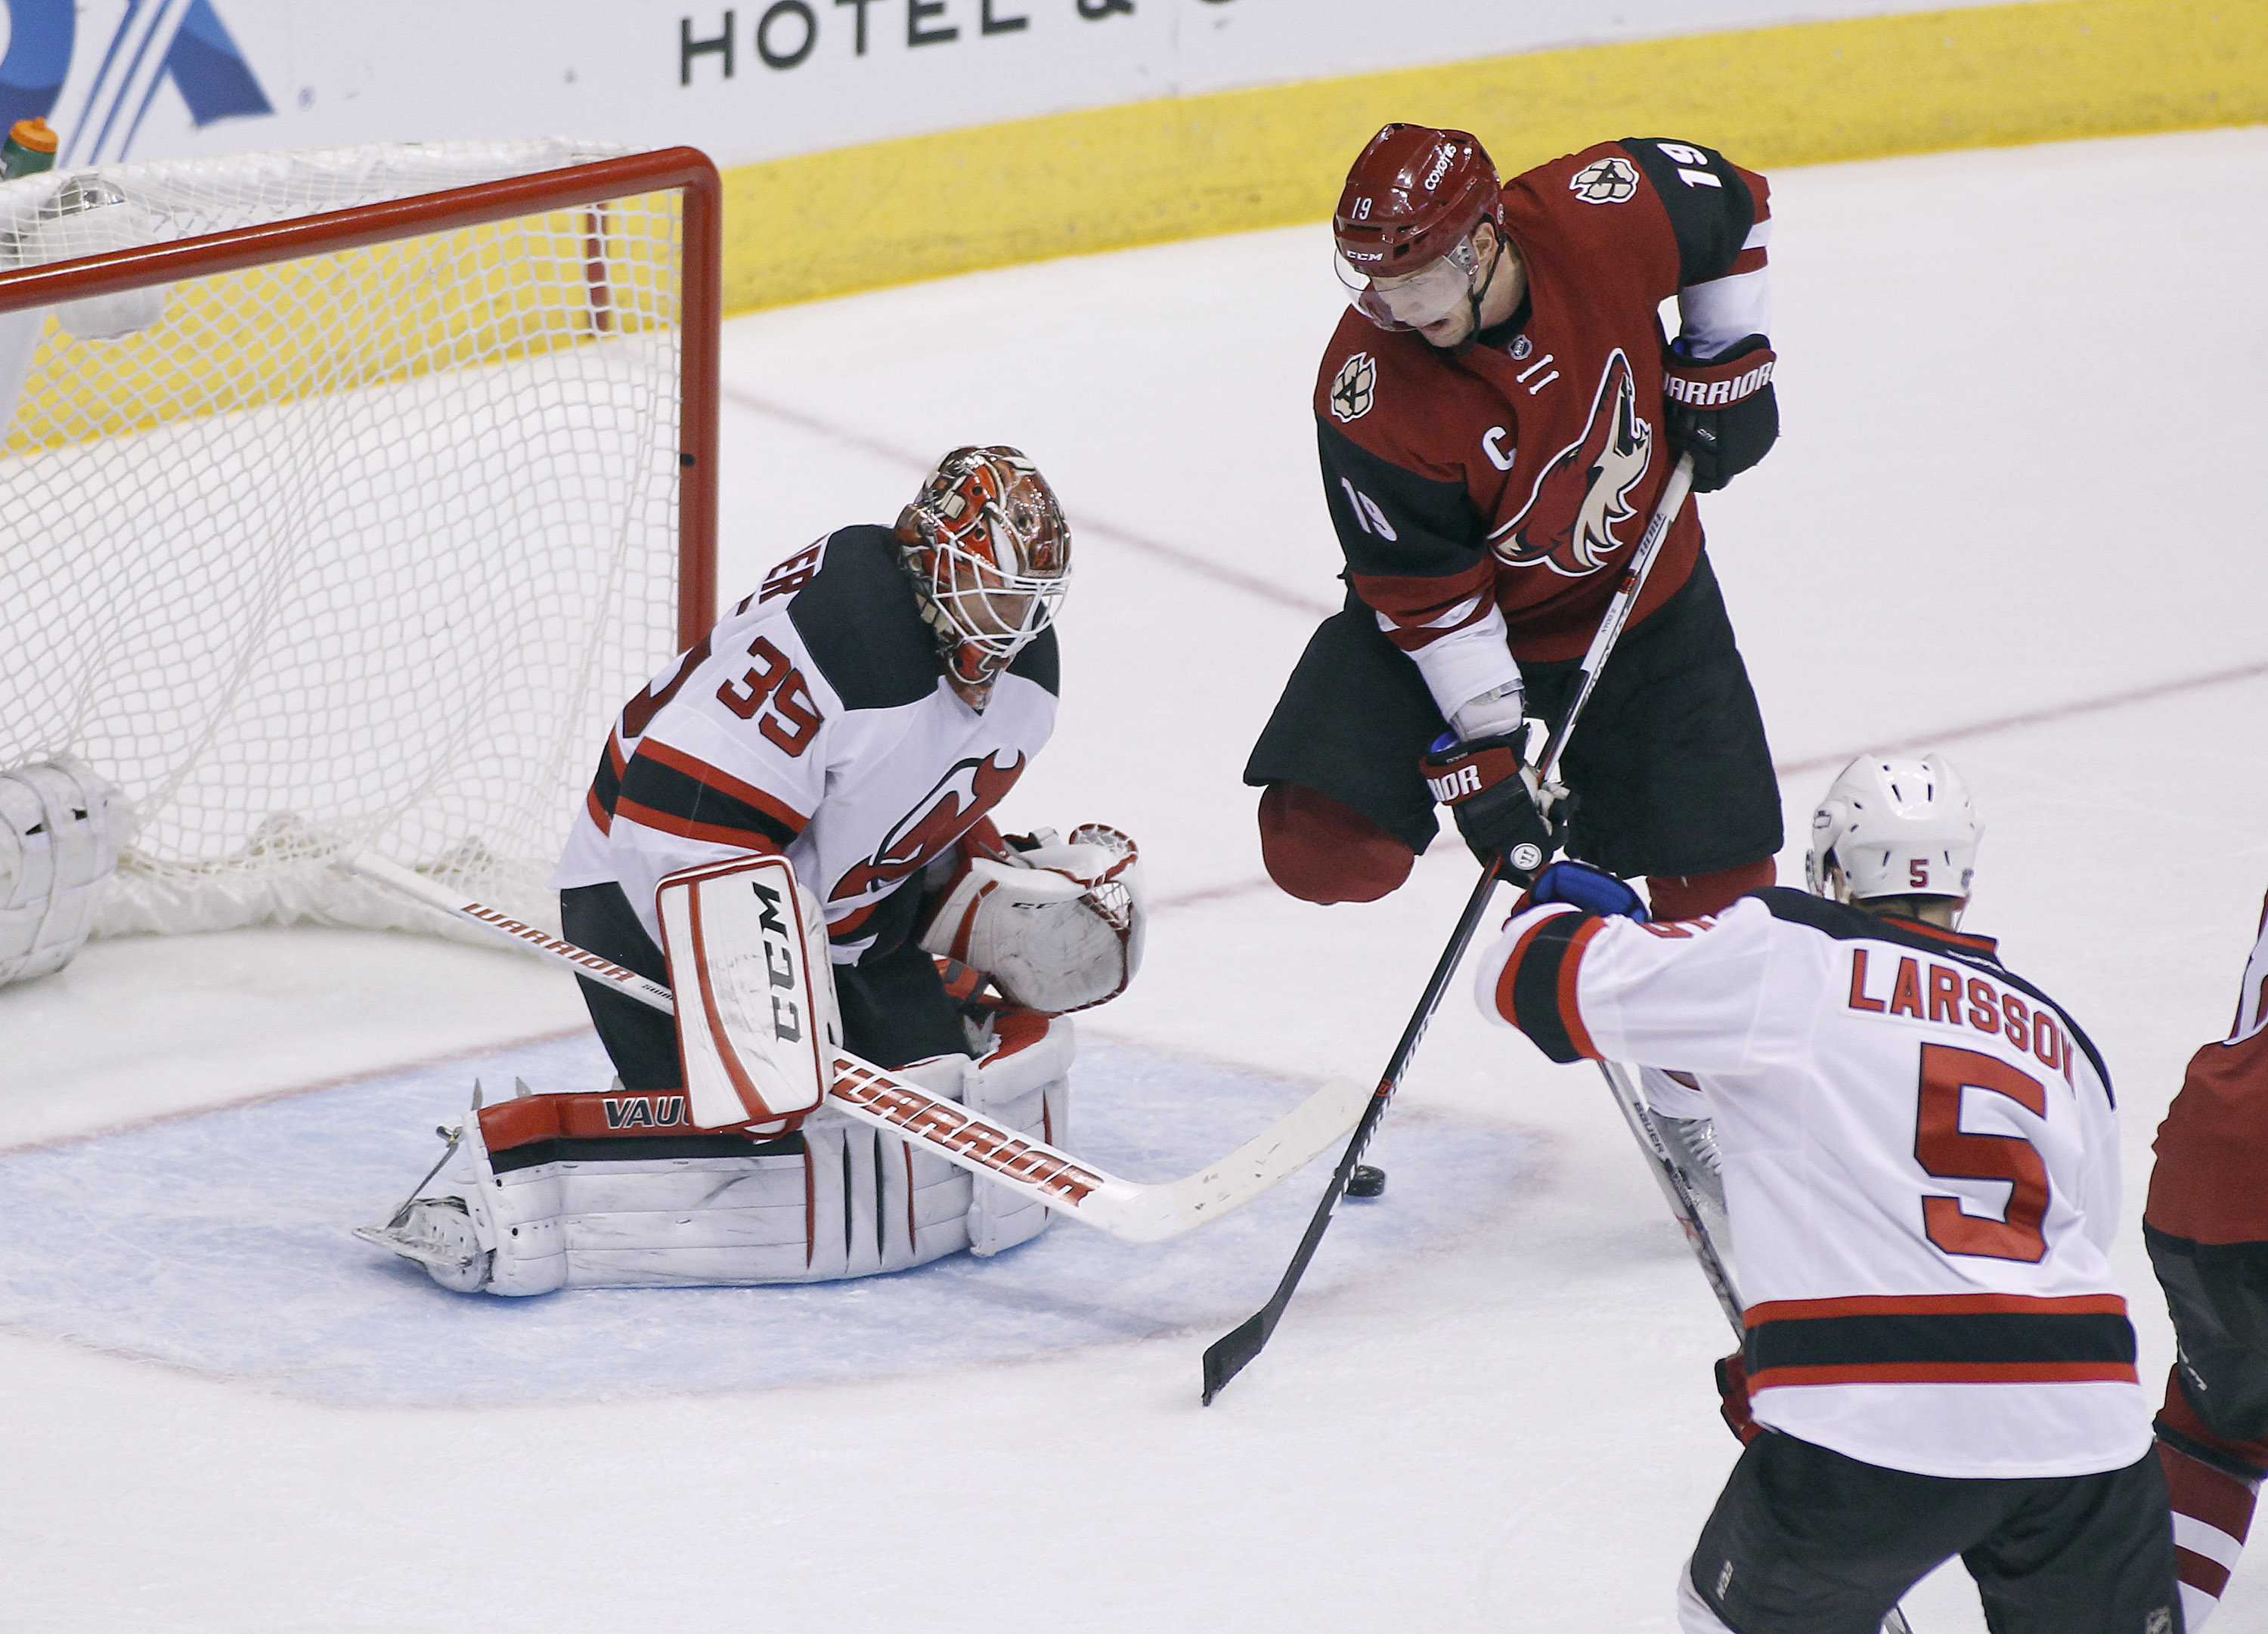 Arizona Coyotes' Shane Doan (19) tries to re-direct the puck past New Jersey Devils goalie Cory Schneider (35) as the Devil's Adam Larsson (5), of Sweden, defends during the second period of an NHL hockey game, Saturday, Jan. 16, 2016, in Glendale, Ariz.